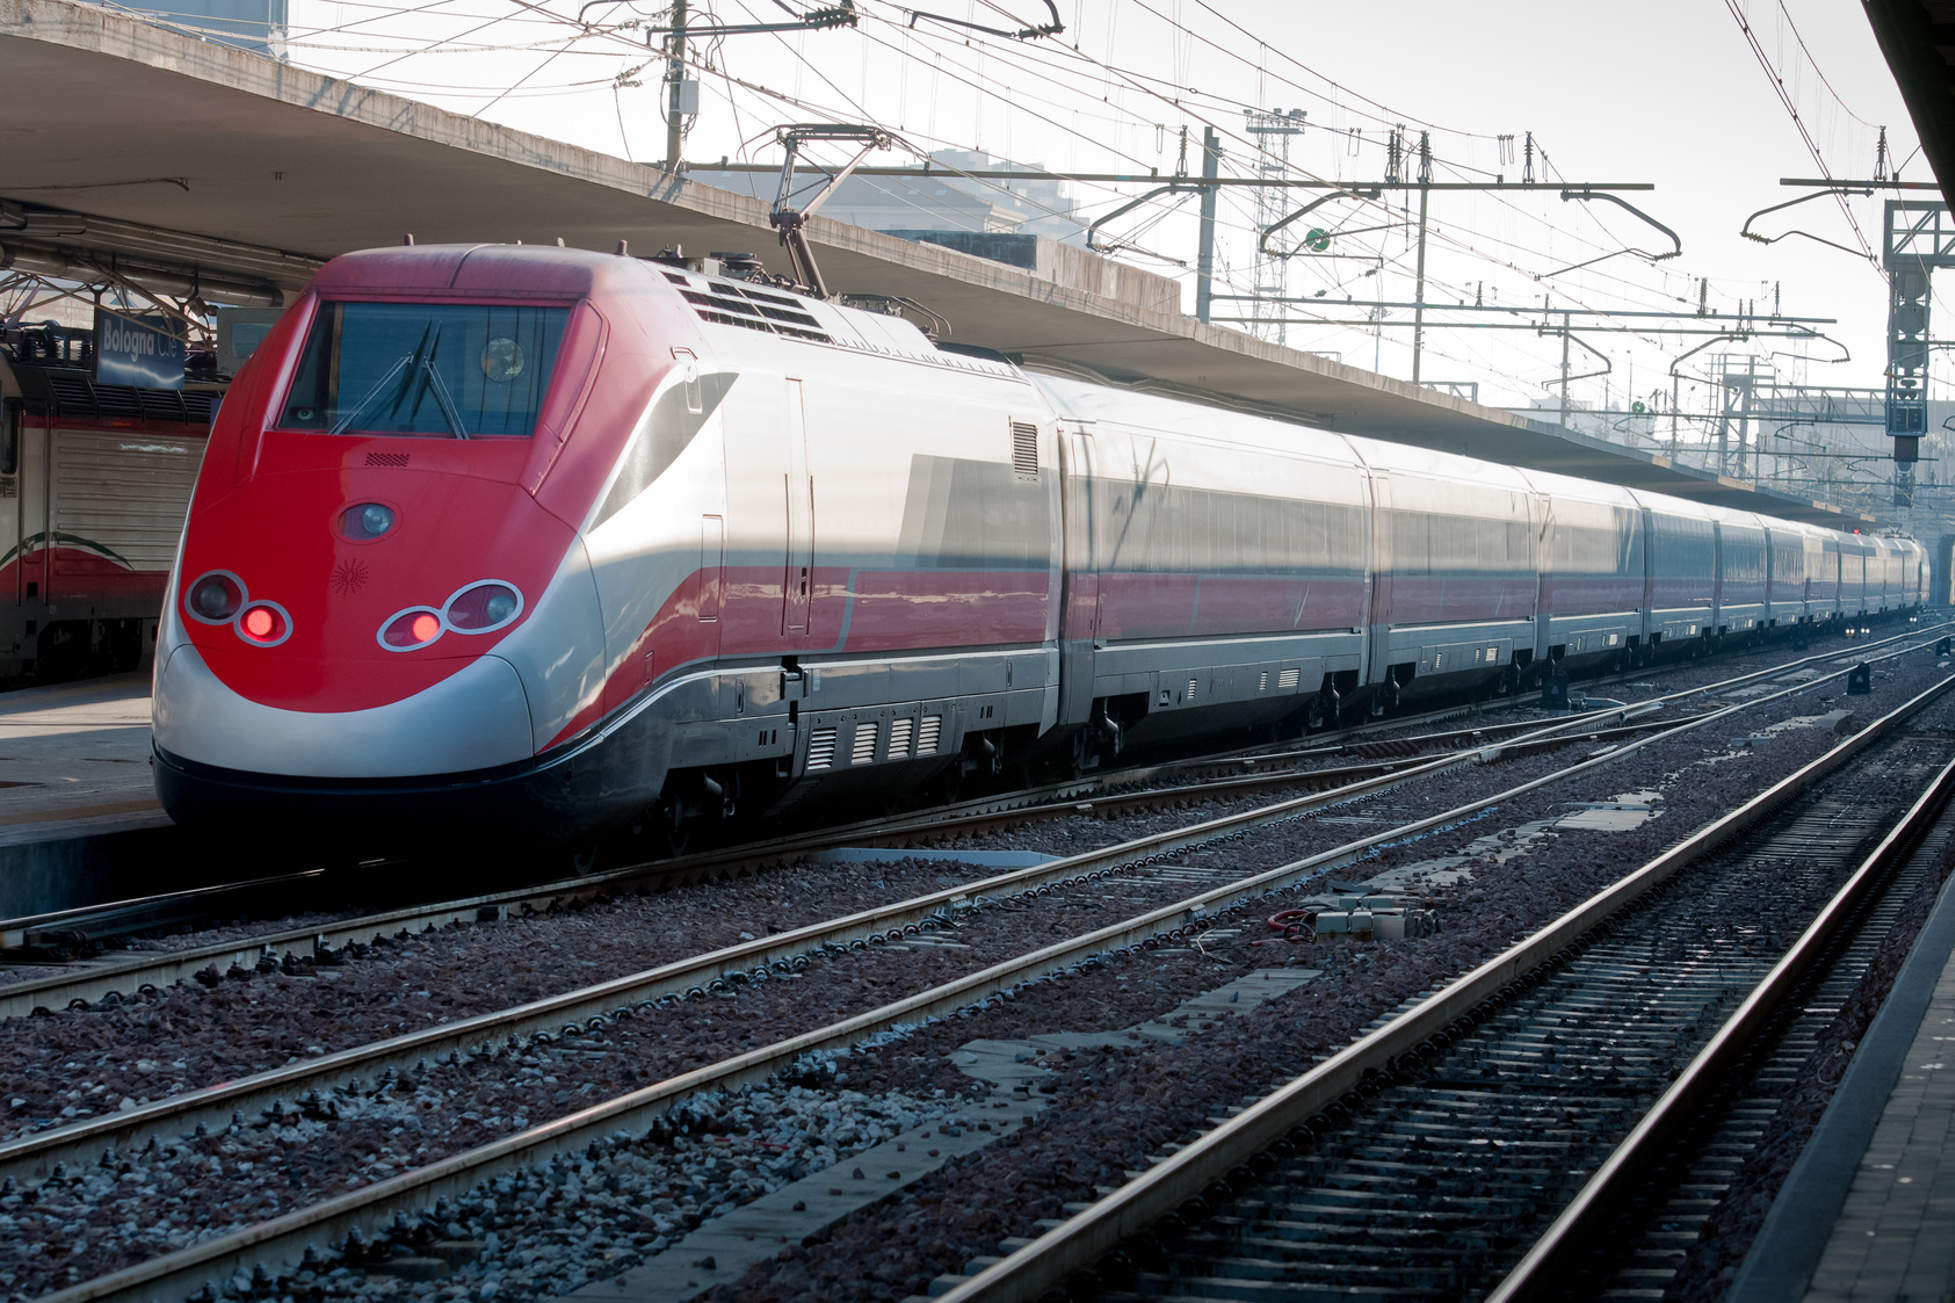 the Italian high speed train leaving the station